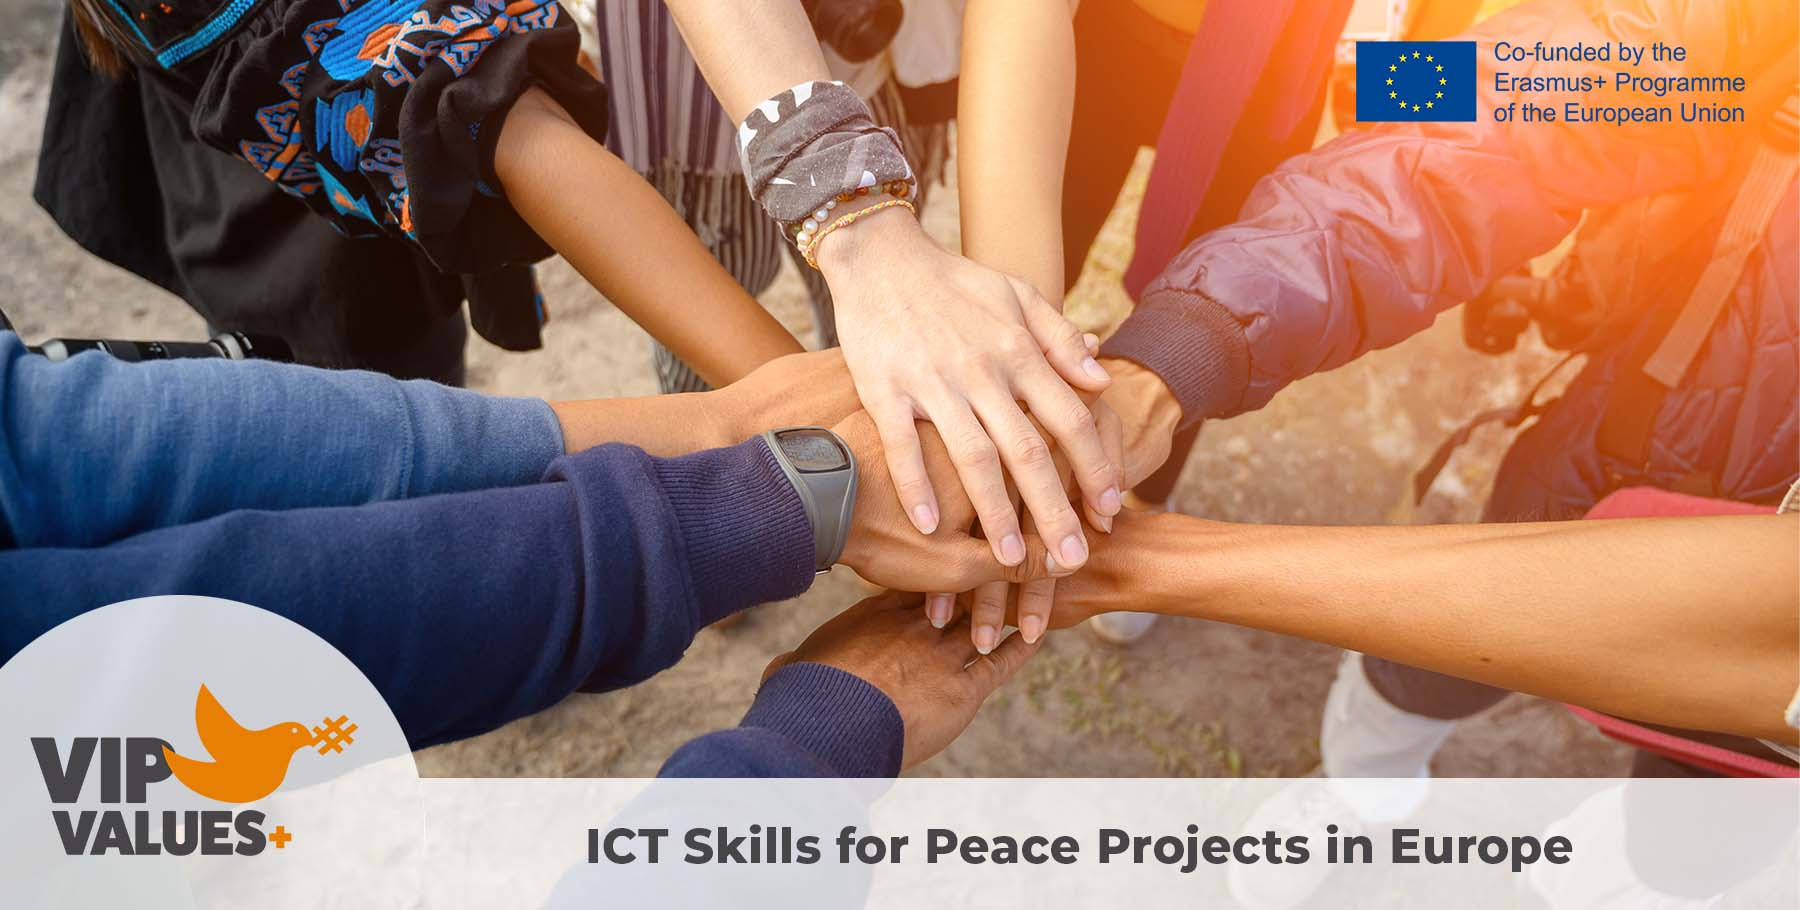 VIP VALUES+: ICT Skills for Peace Projects in Europe